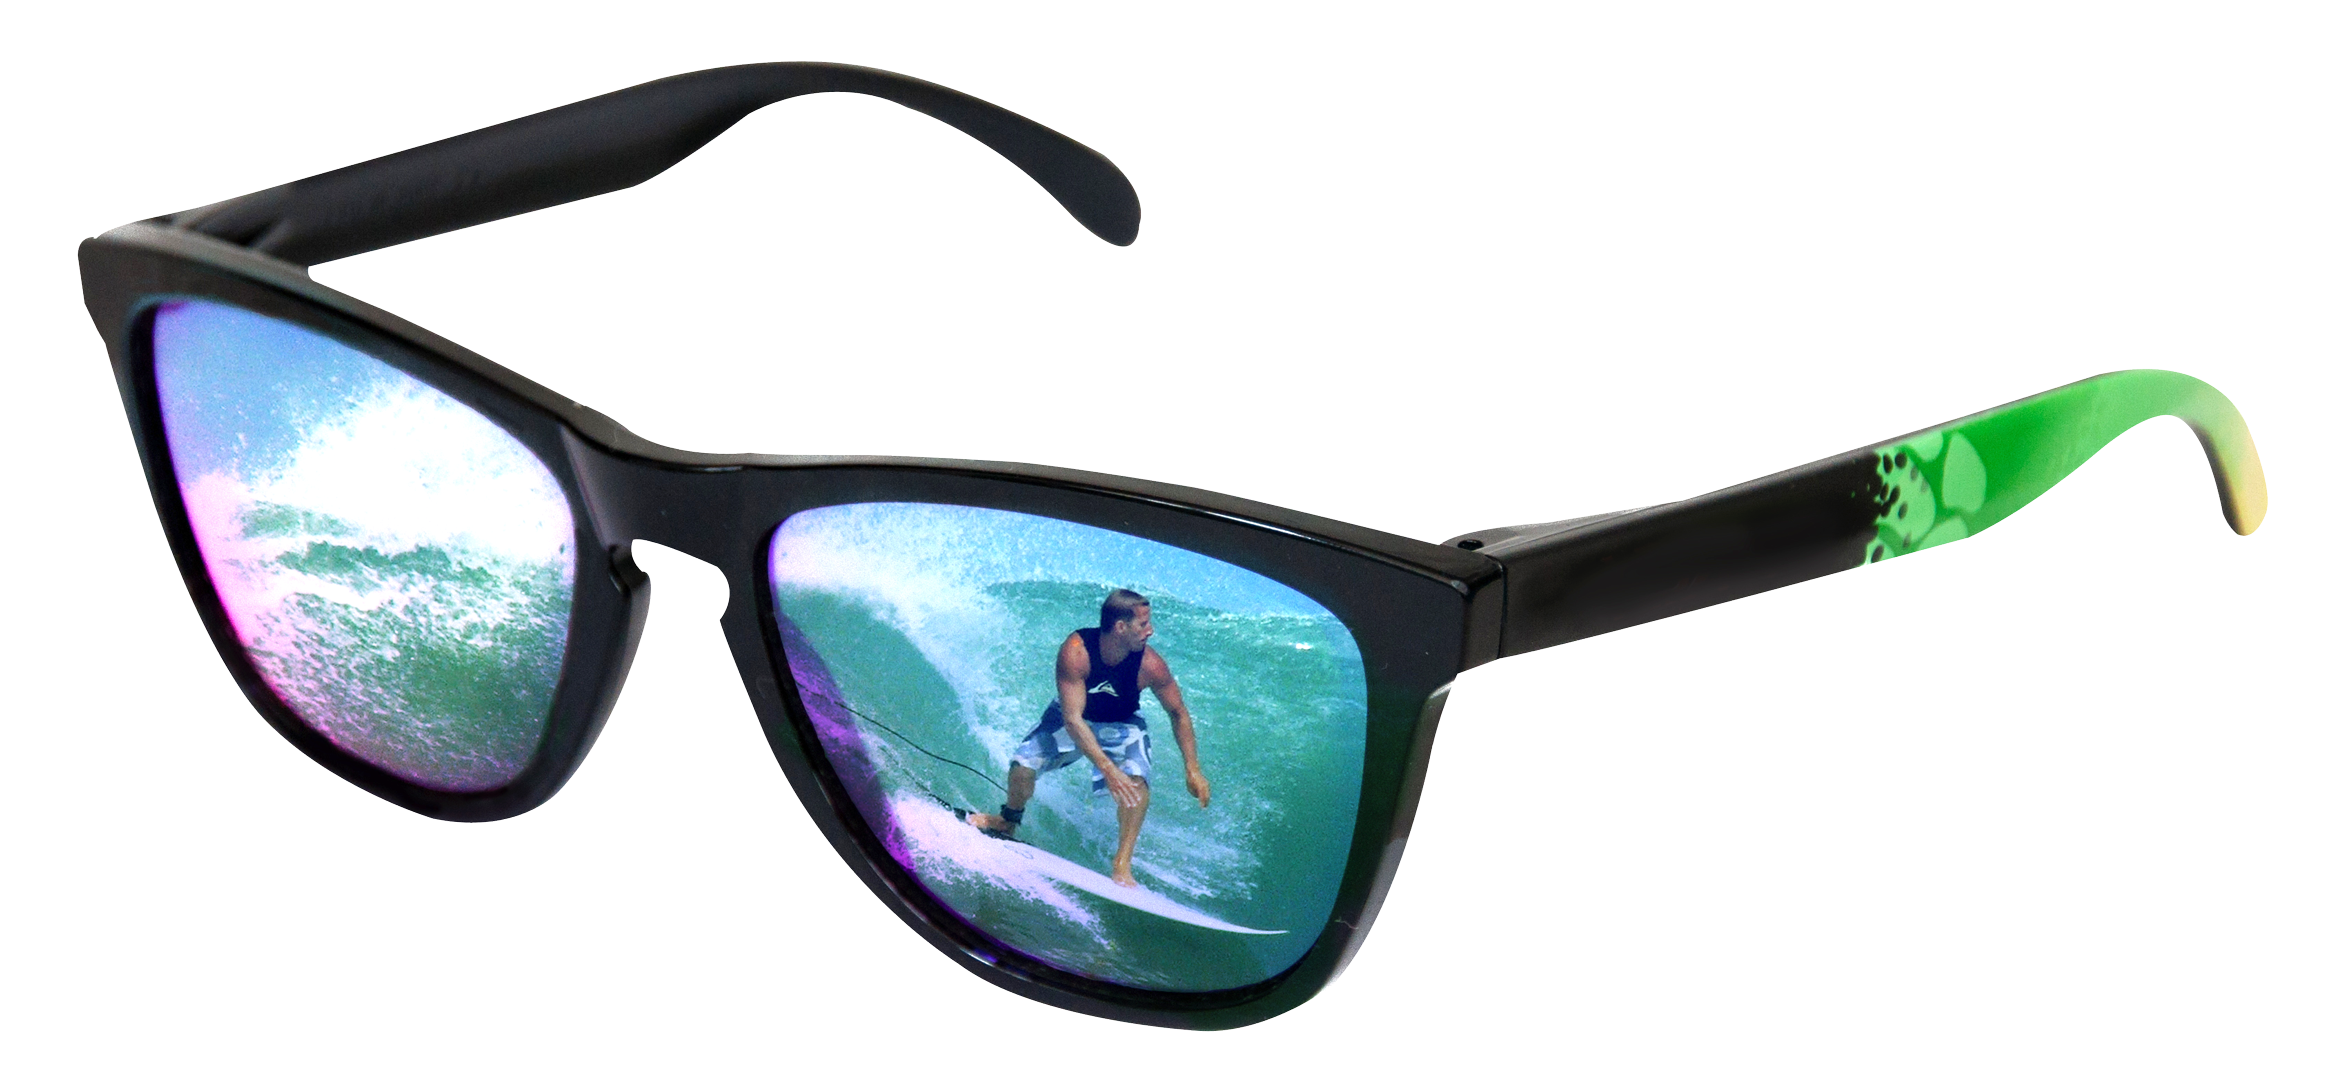 Sunglasses With Surfer Reflection PNG Image - Sunglasses HD PNG